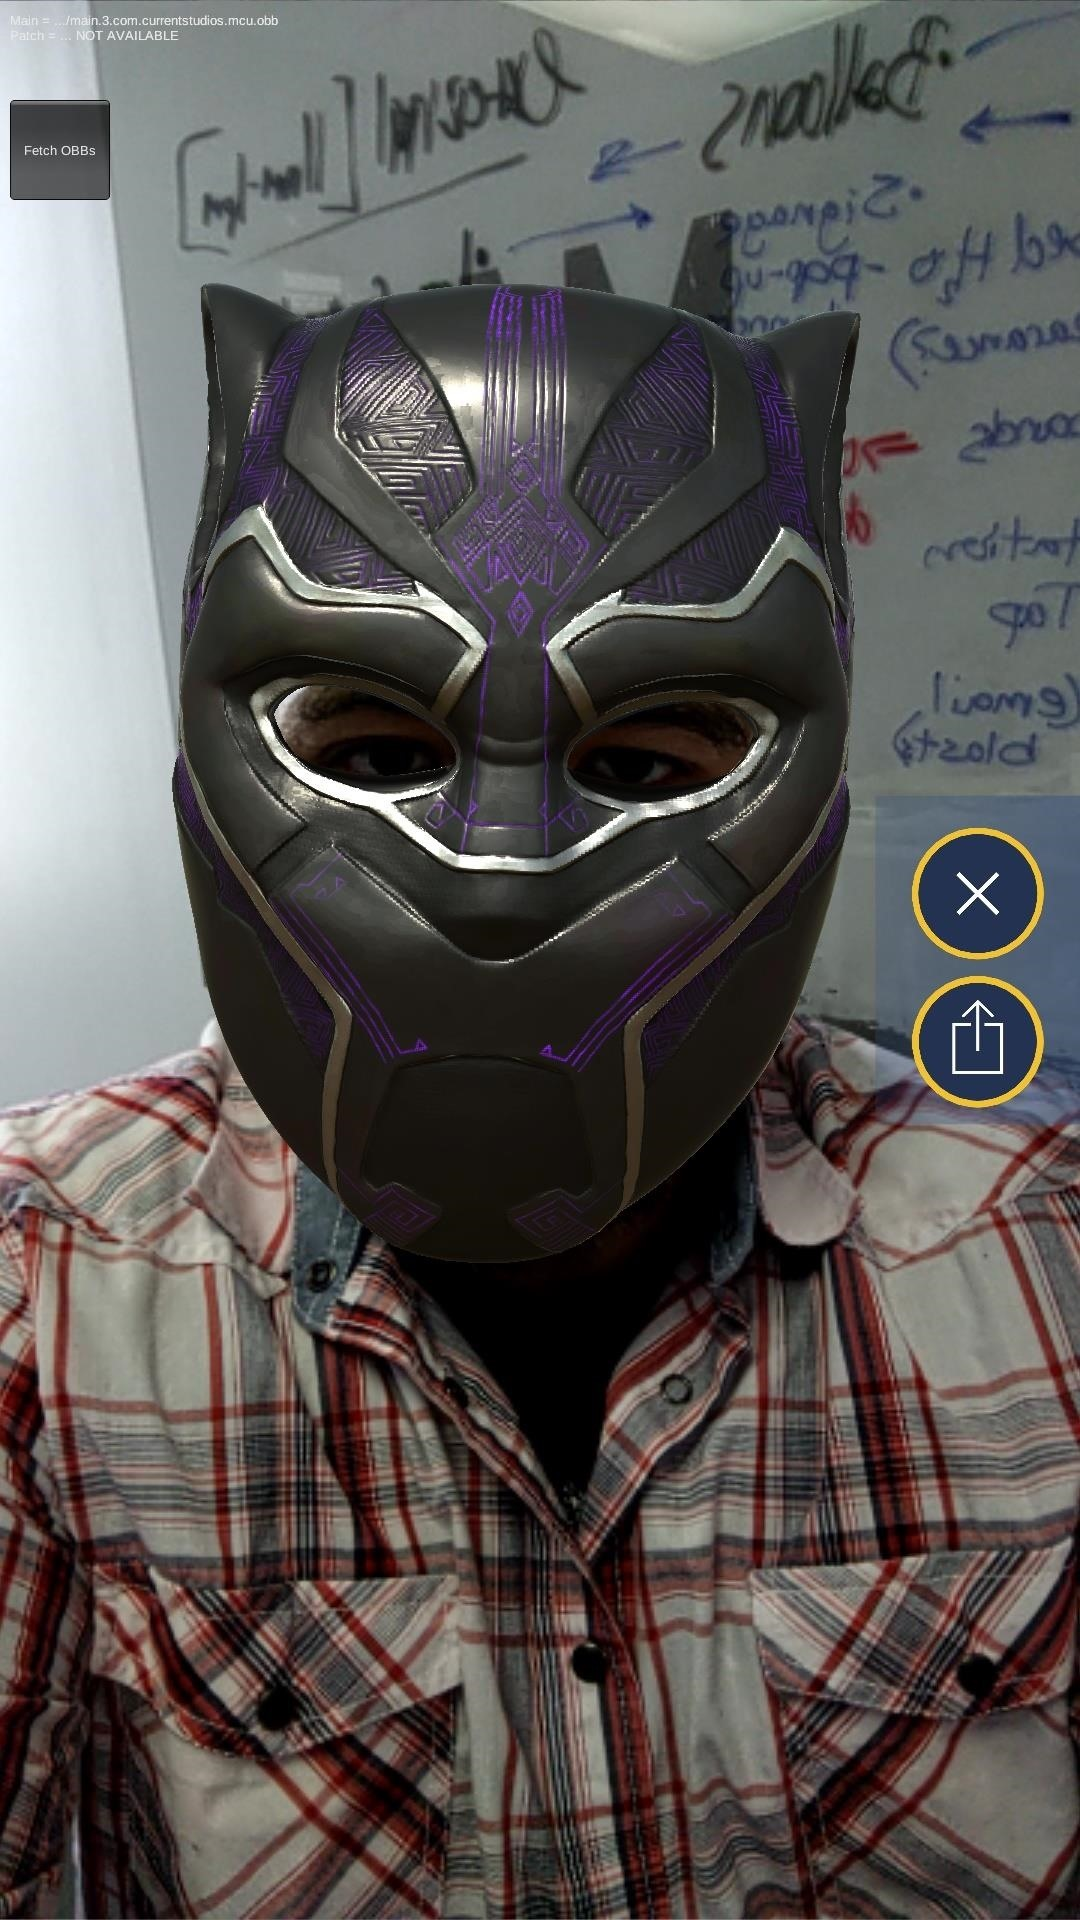 Walmart Shoppers Can Now Use Their Smartphones to Become Marvel's Black Panther via Augmented Reality